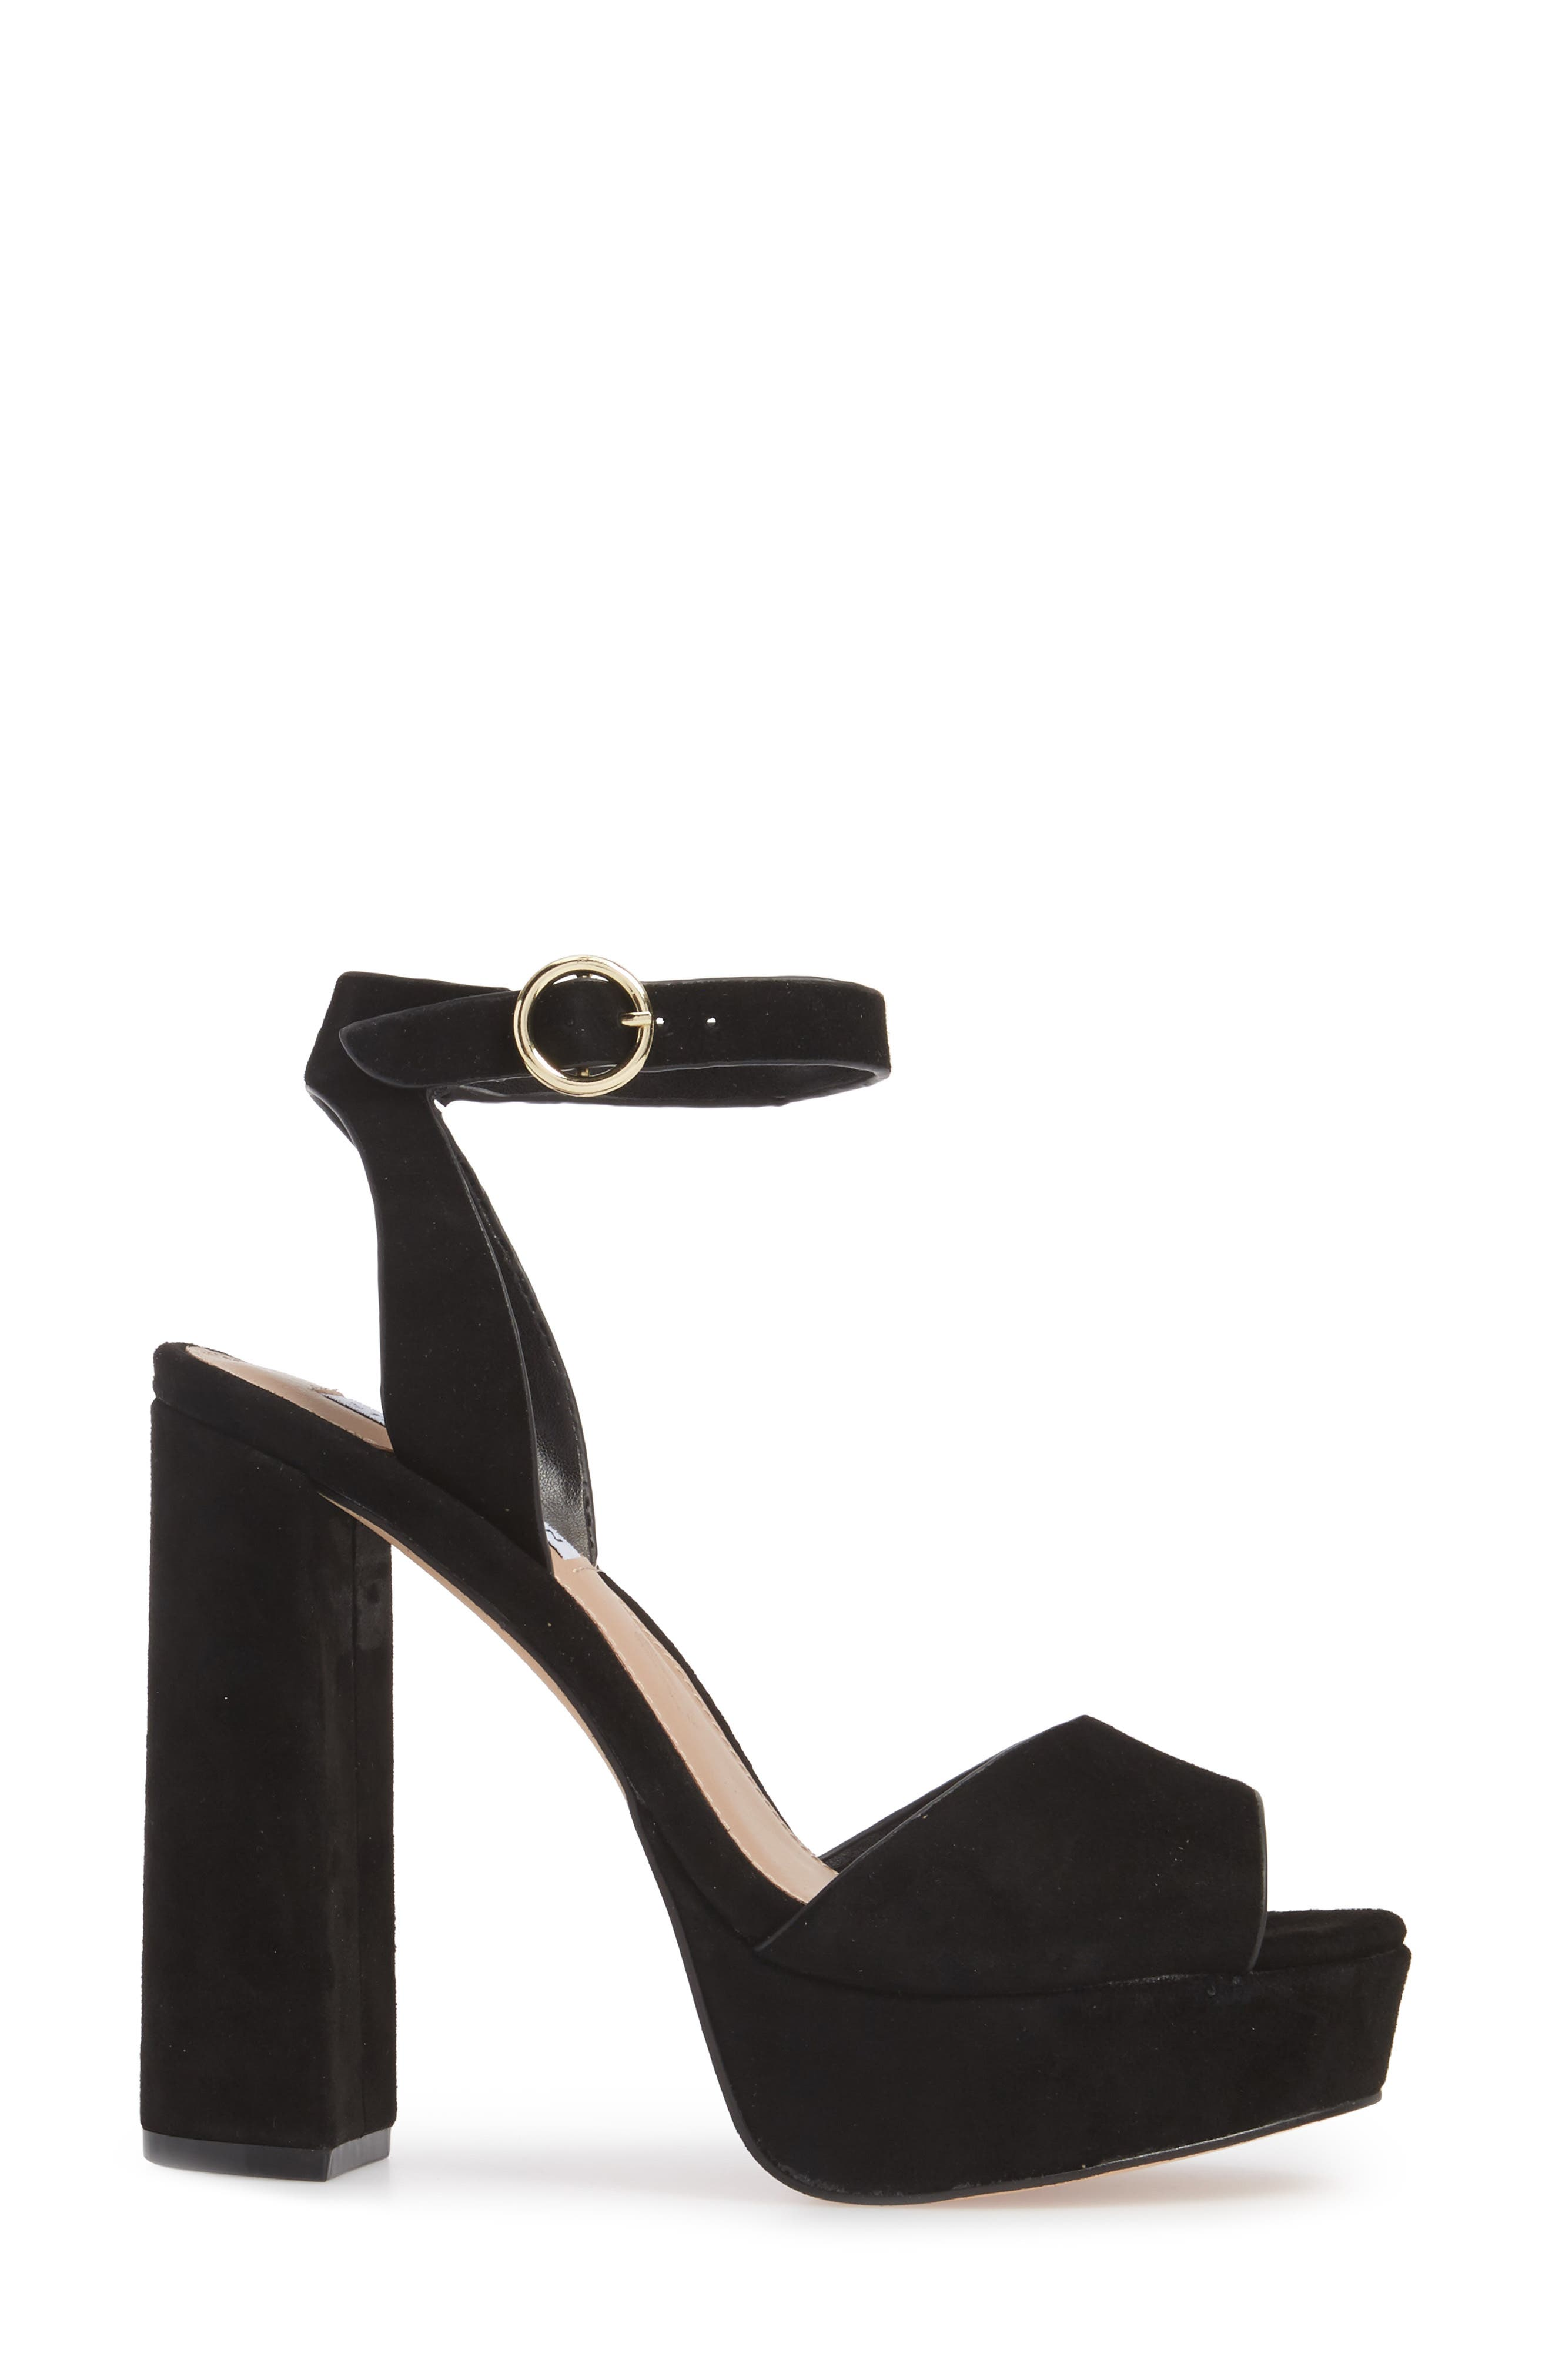 STEVE MADDEN, Madeline Platform Sandal, Alternate thumbnail 3, color, BLACK SUEDE